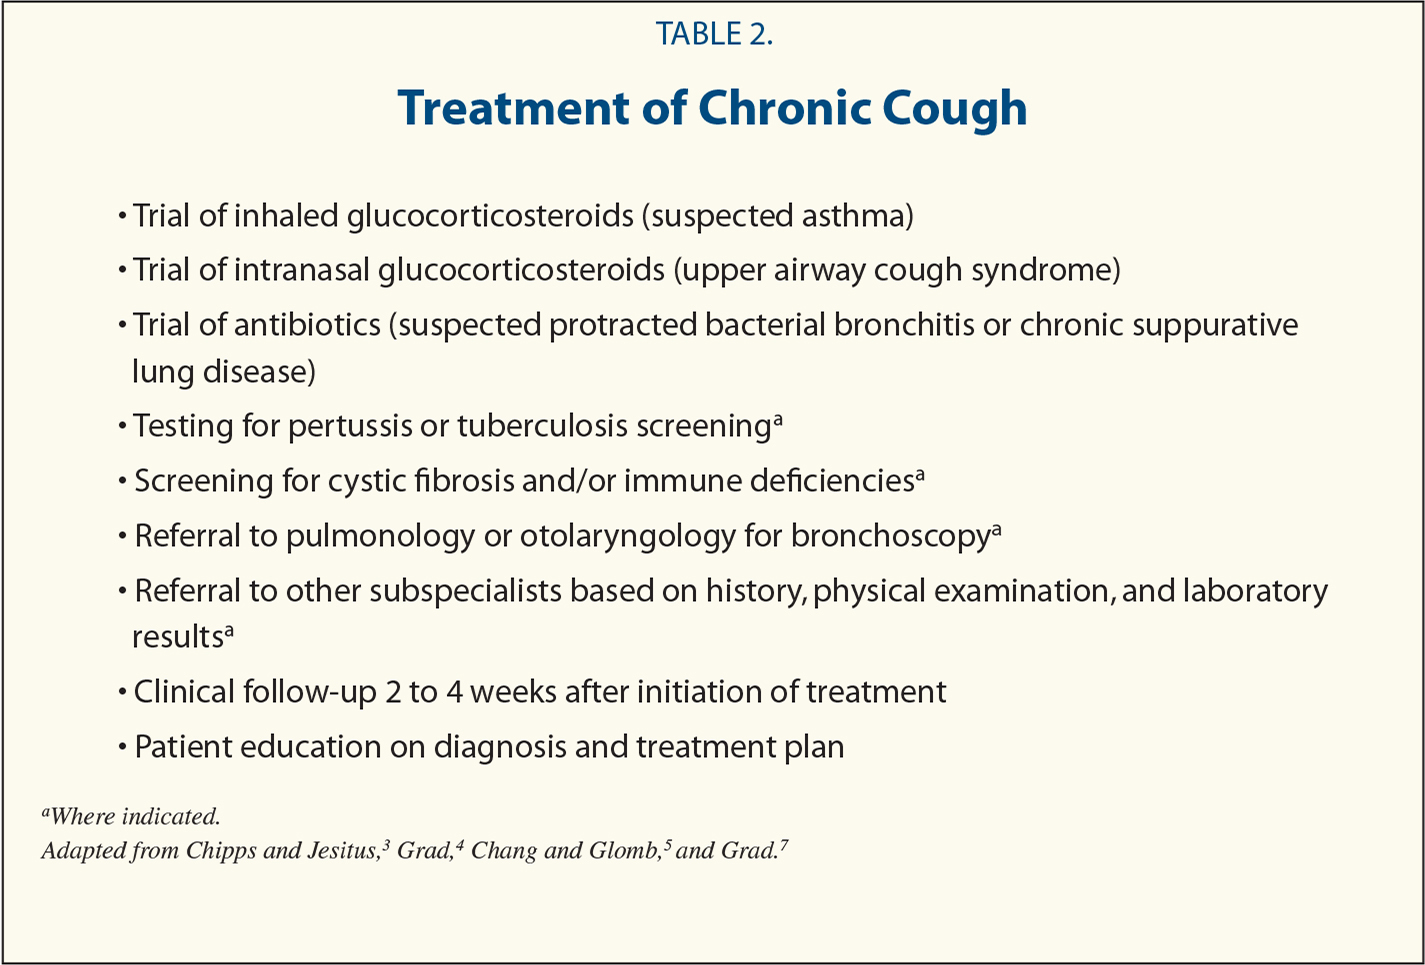 Clinical Evaluation Of Chronic Cough In Children